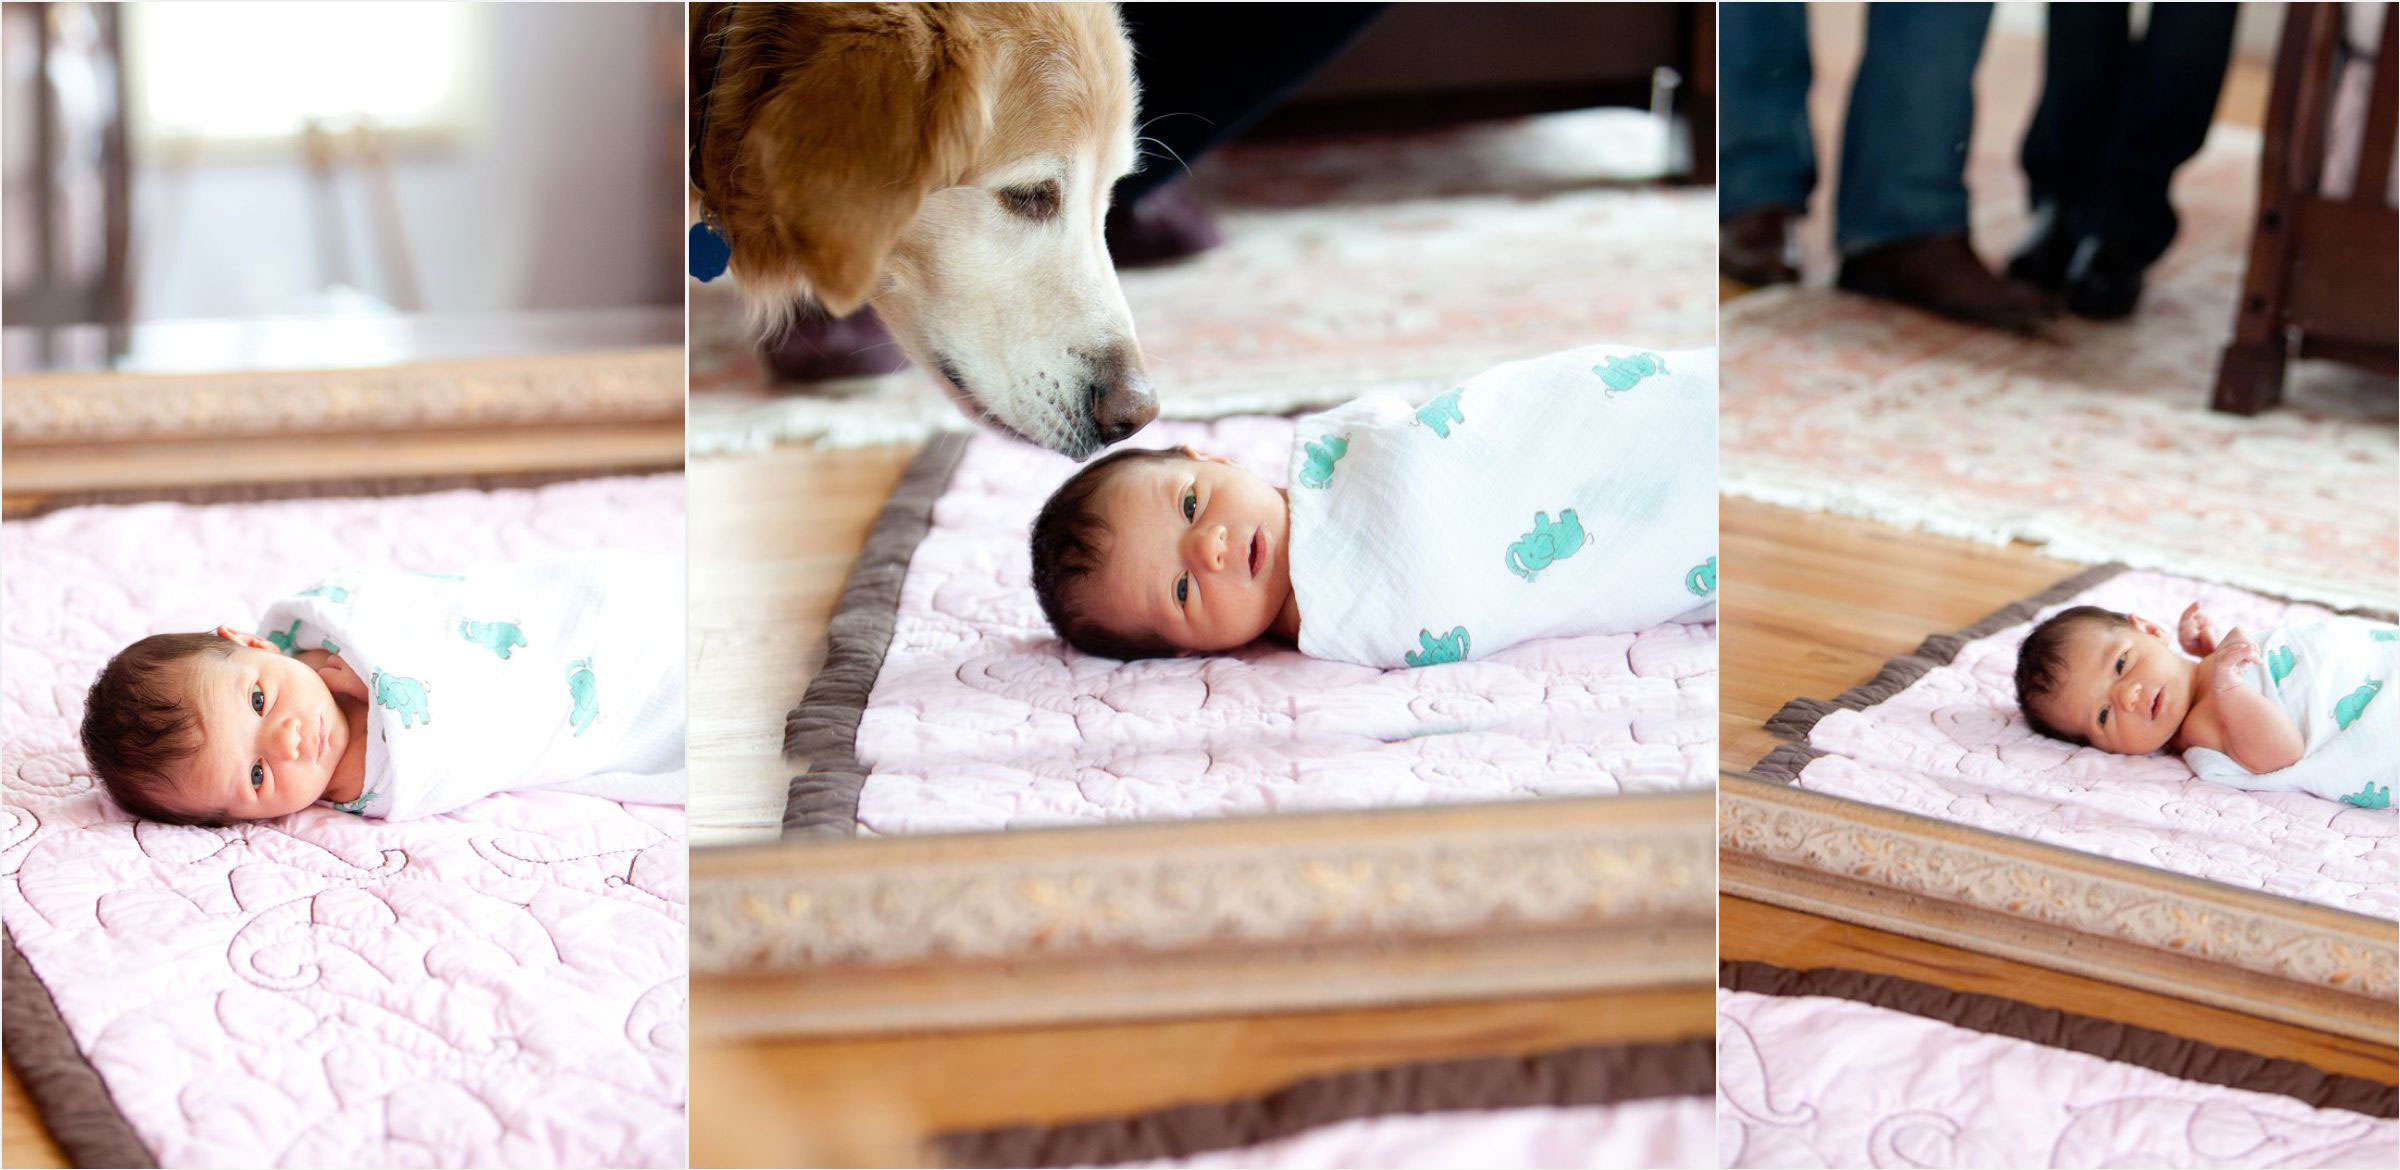 Newborn-swaddled-with-dog-in-baby-nursery-in-hilltop-denver-home-006